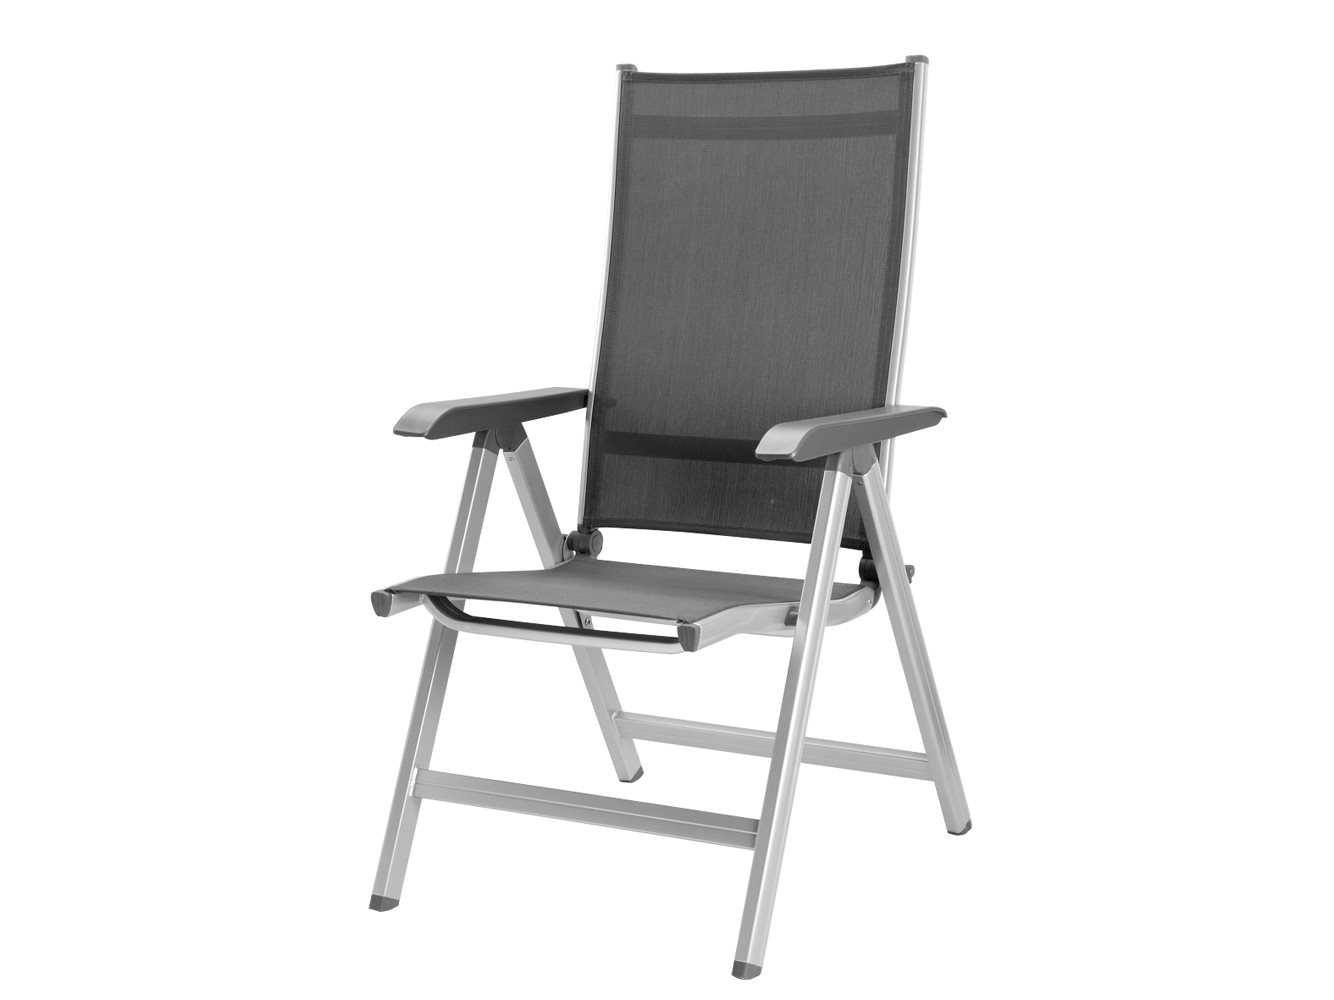 folding aluminum lawn chairs comfortable work chair kettler basic plus multi position arm kr3012010000